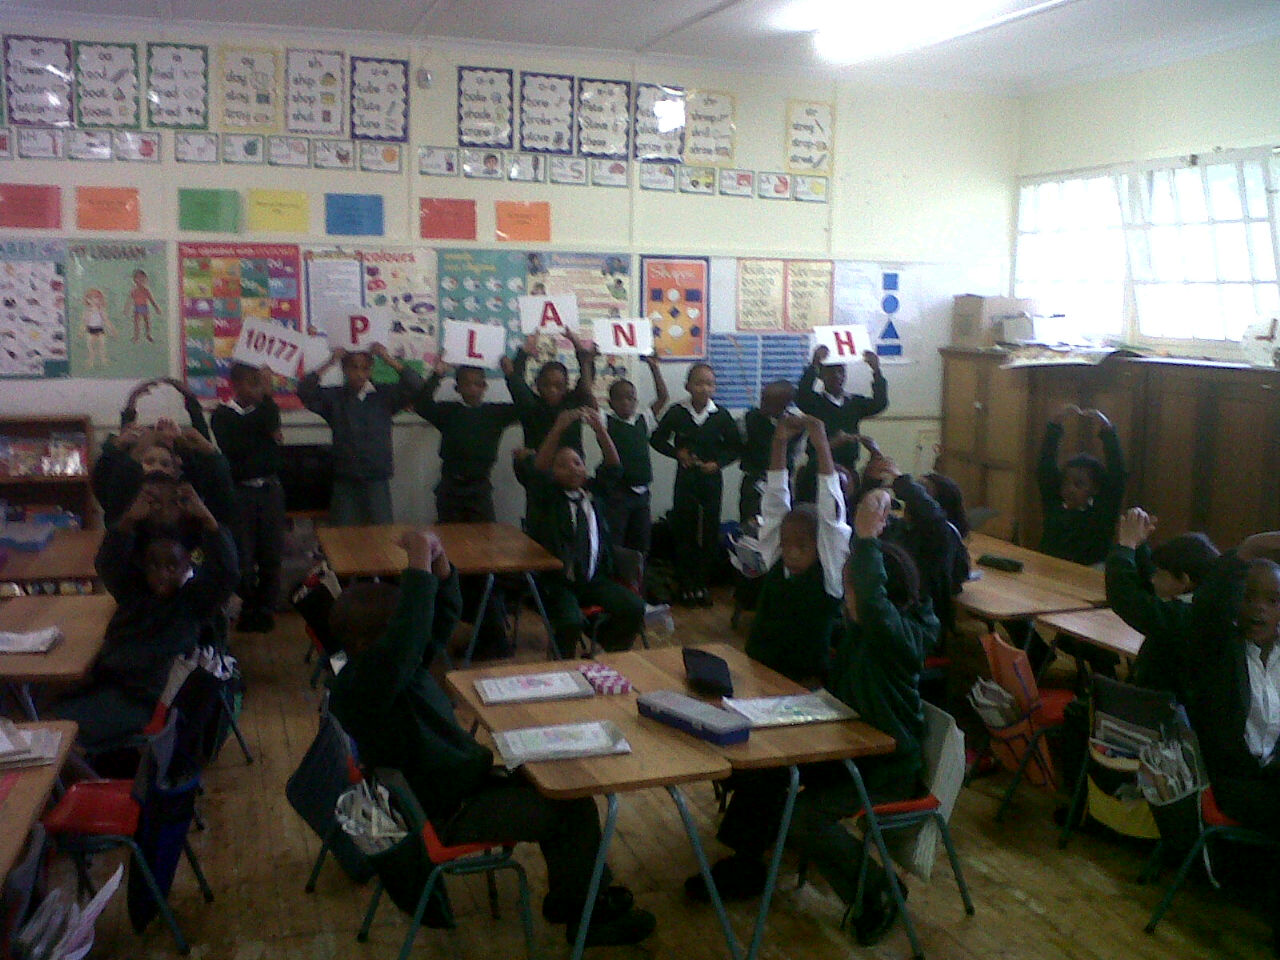 The grade 3 class at